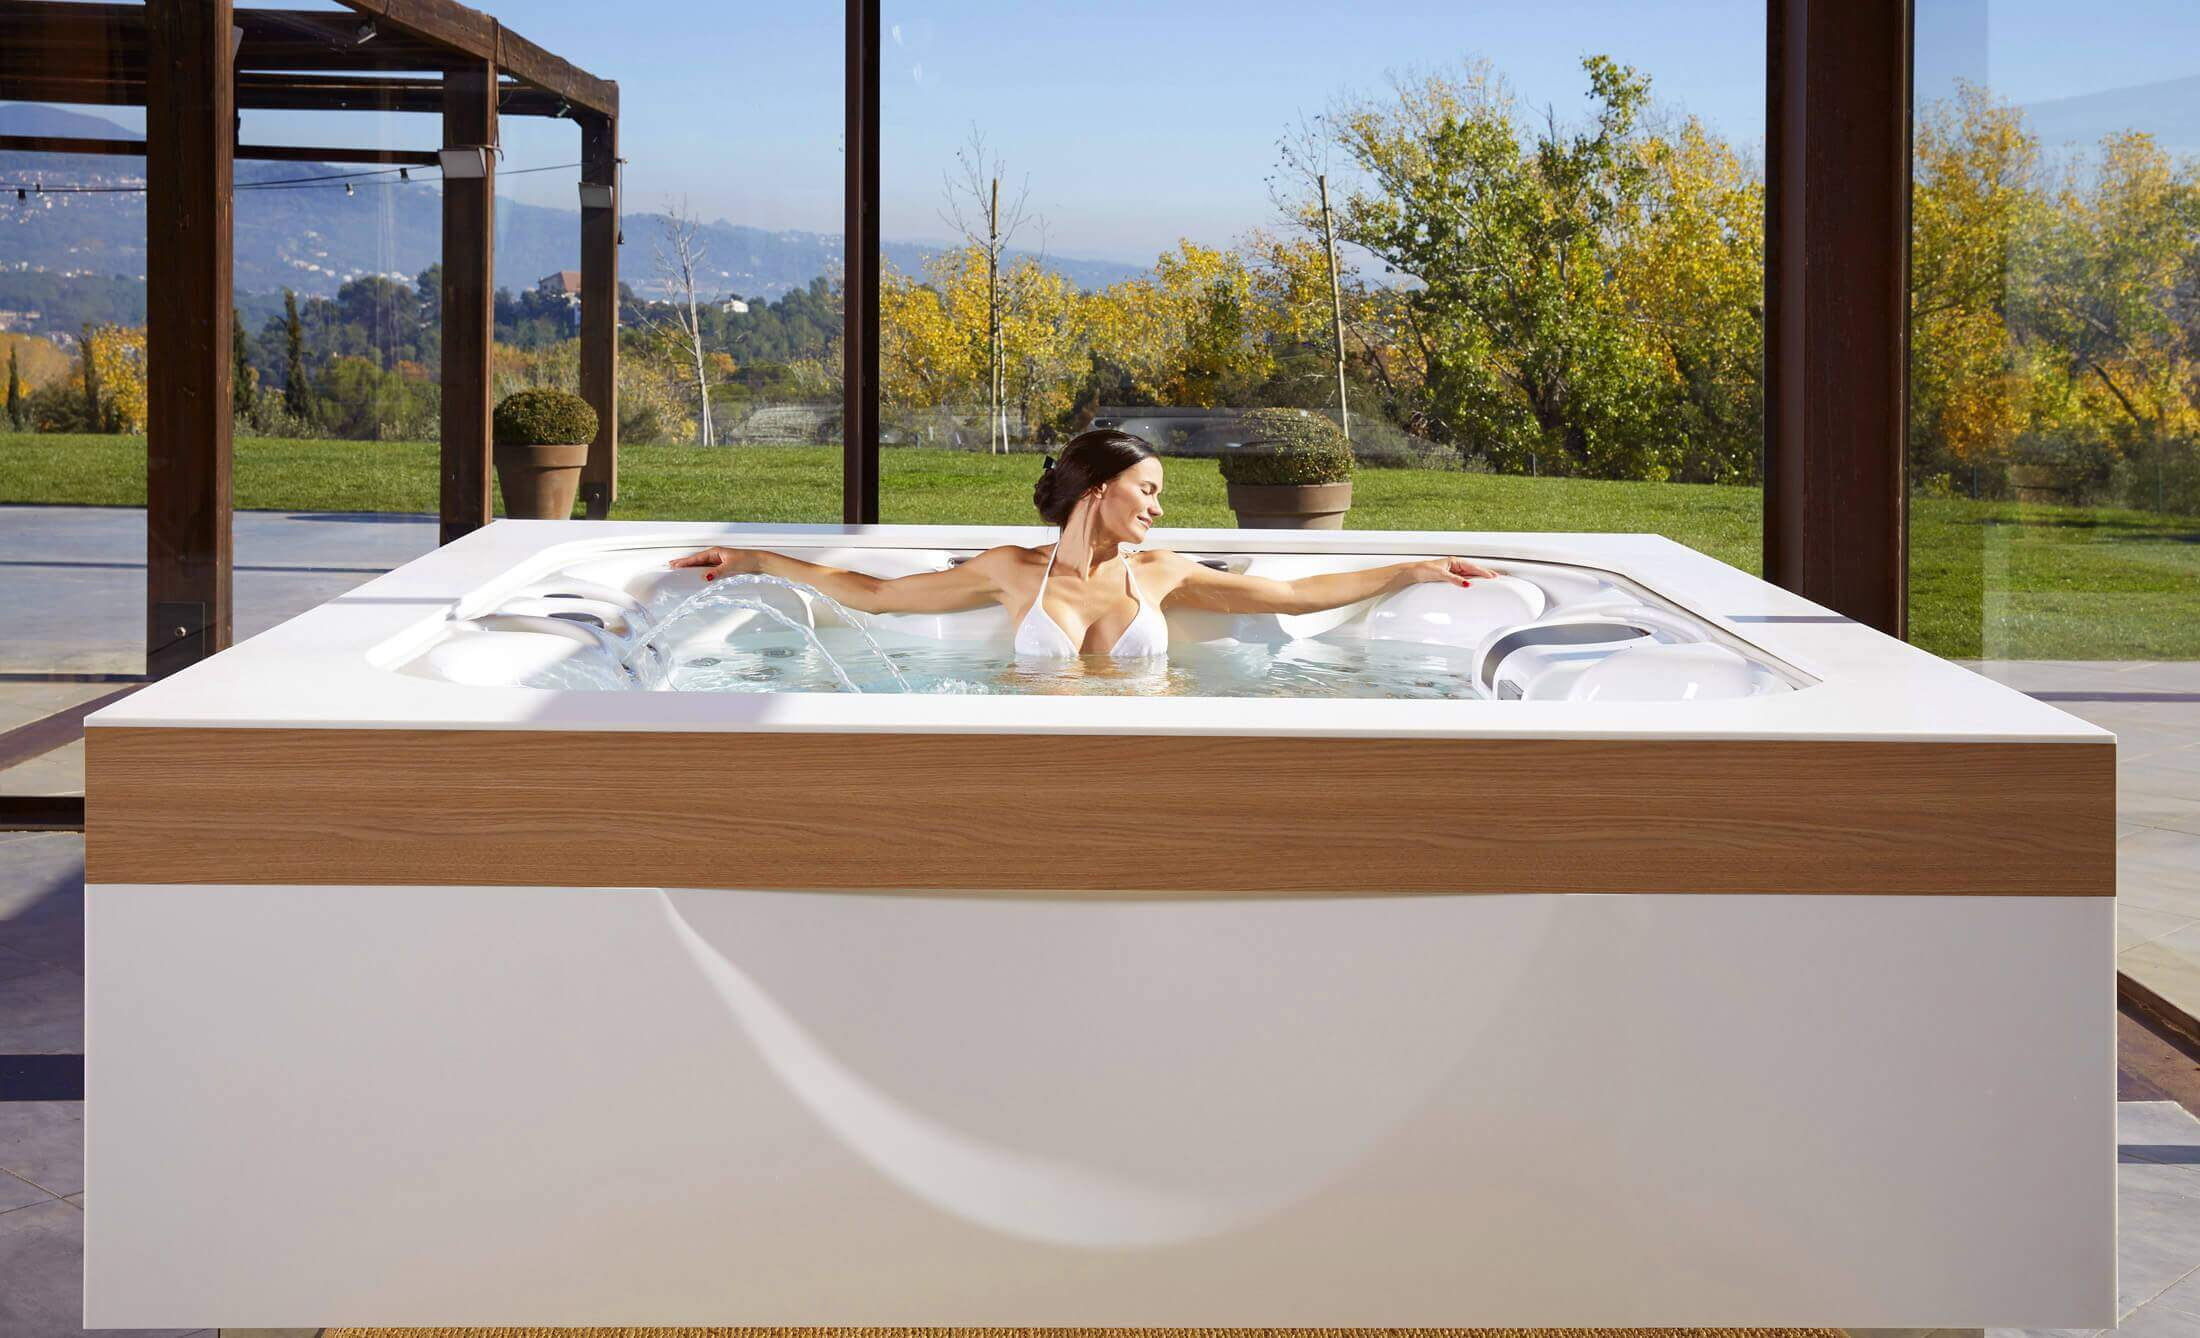 Spa Exterieur Tromso Spas Jacuzzis Et Spas De Nage Aquavia Spa France